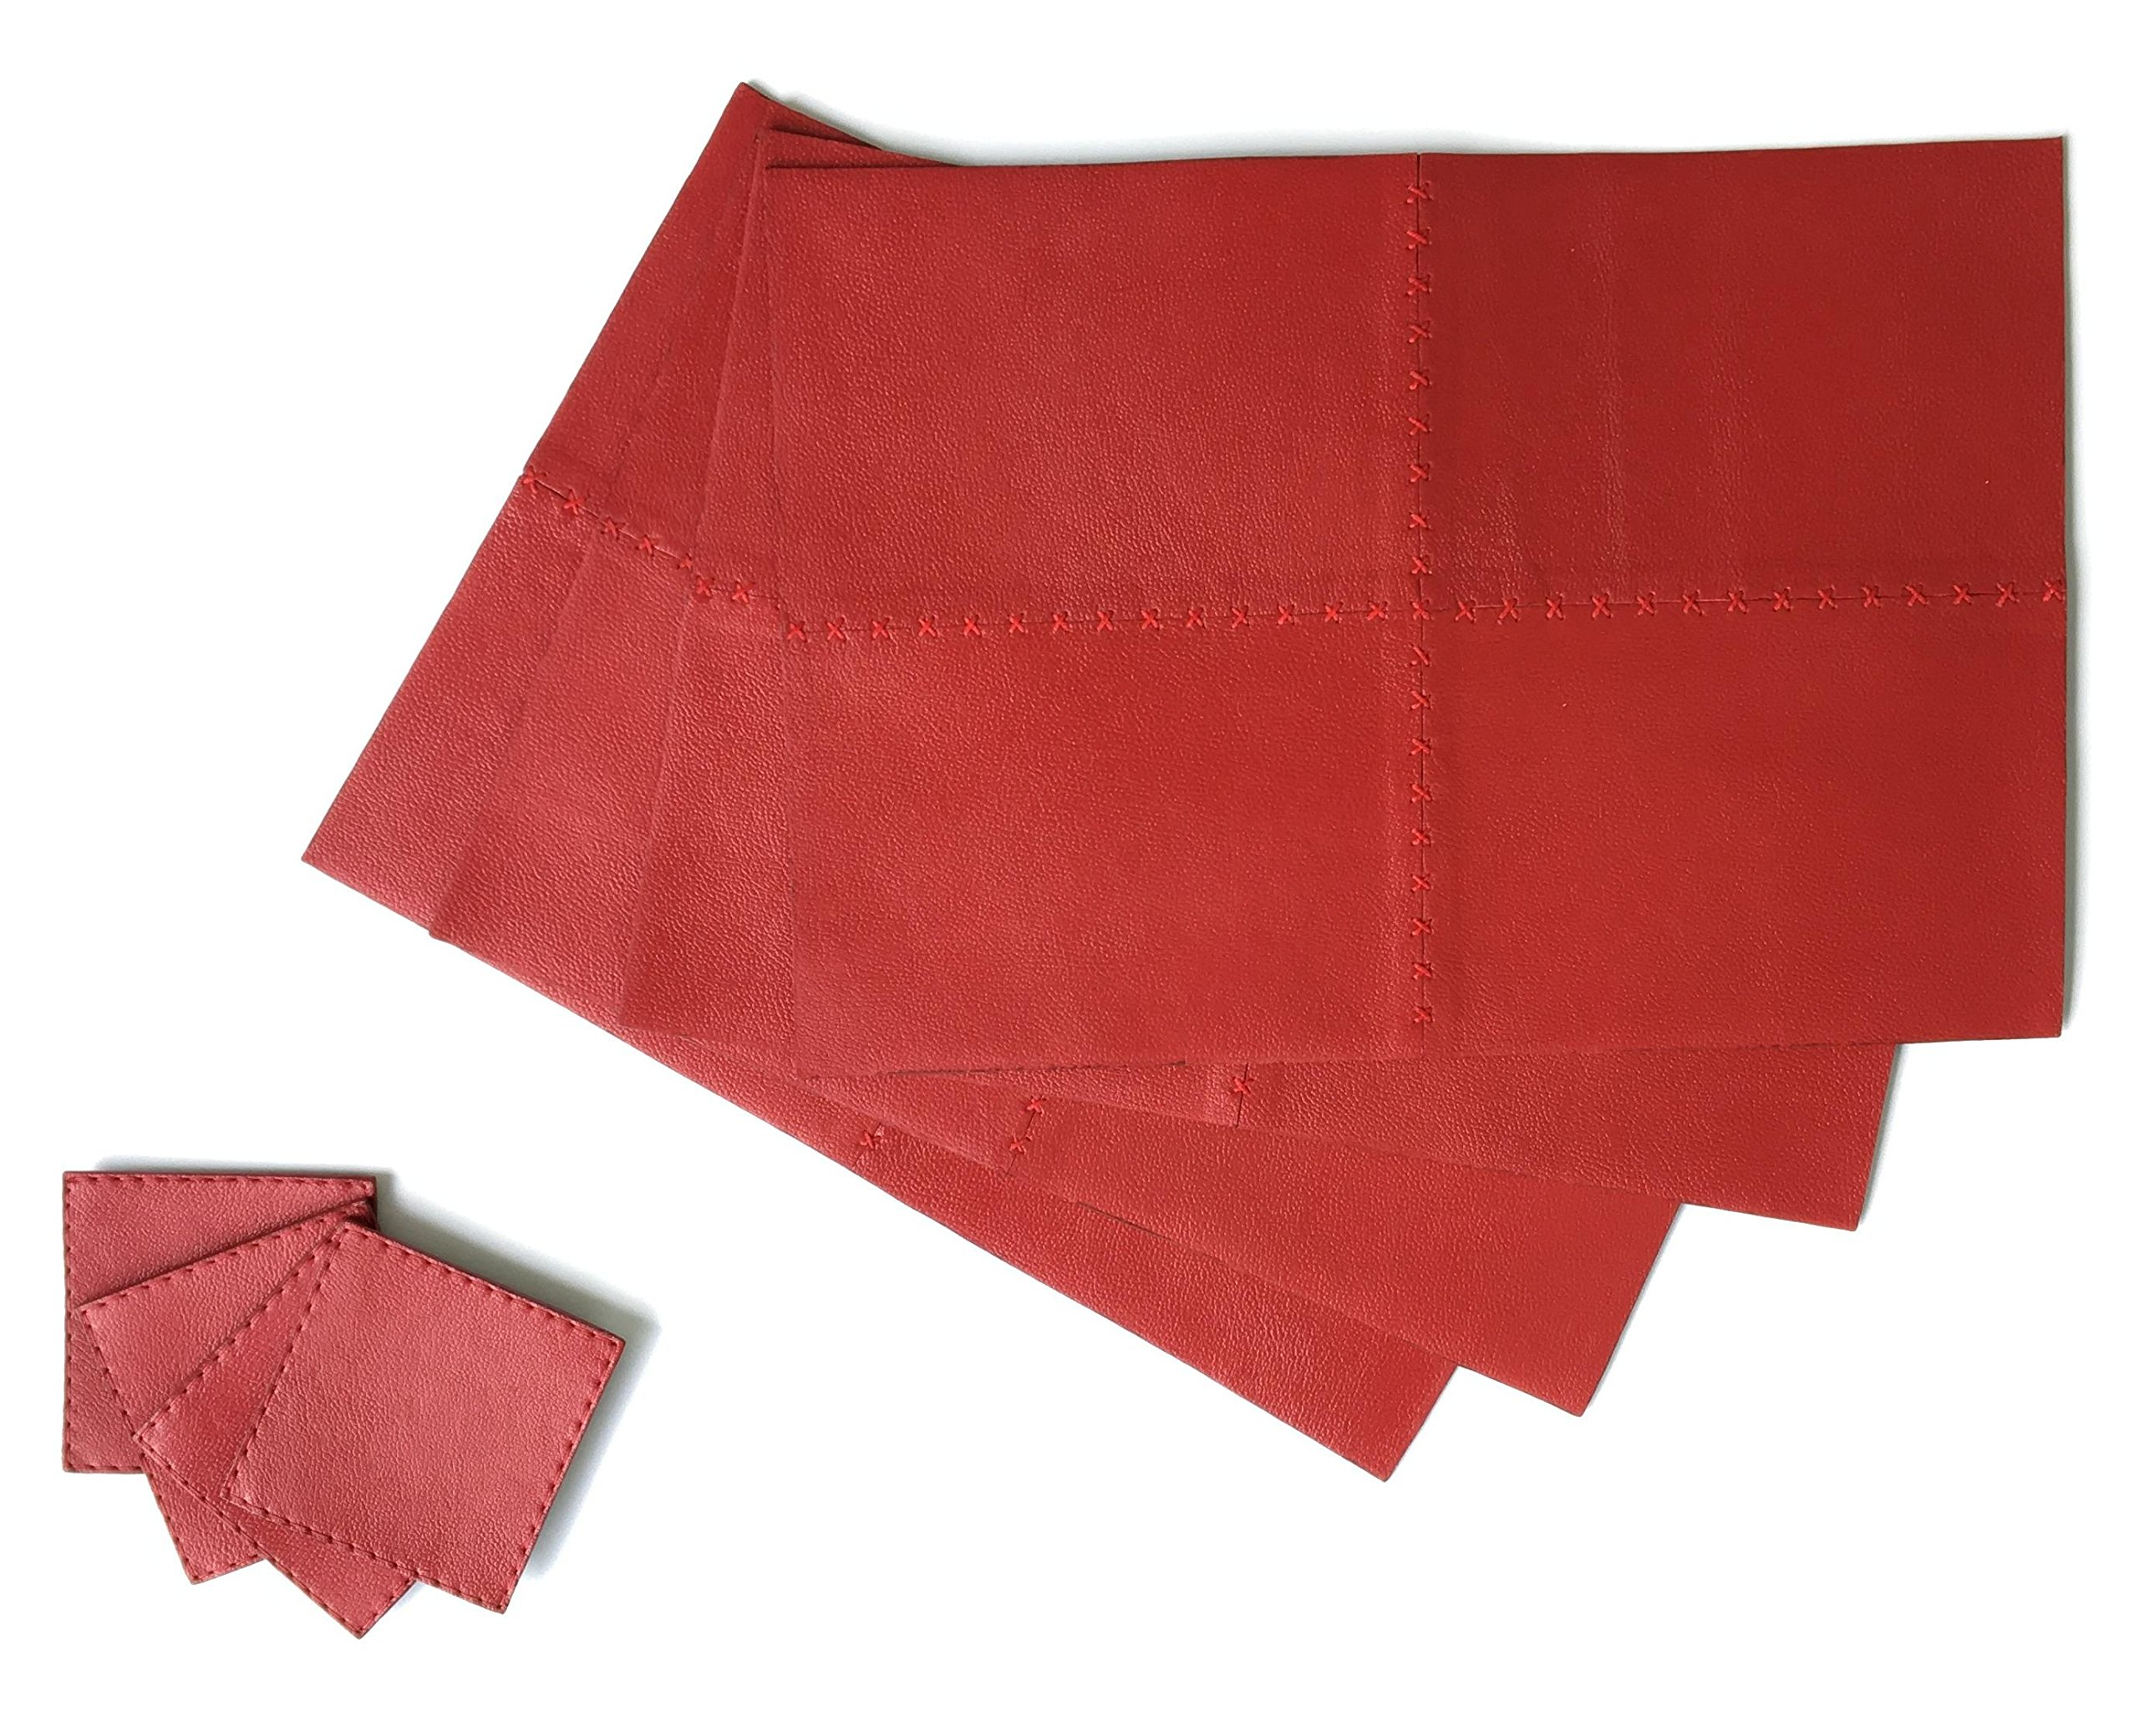 Set of 4 Piece Genuine Leather Placemat Set With Matching Coasters (Red) for Everyday use Luxury High-end Design in Kitchen and Dining Table - Easy to Clean Place Mat 17x12 inches Coaster 4x4 inches